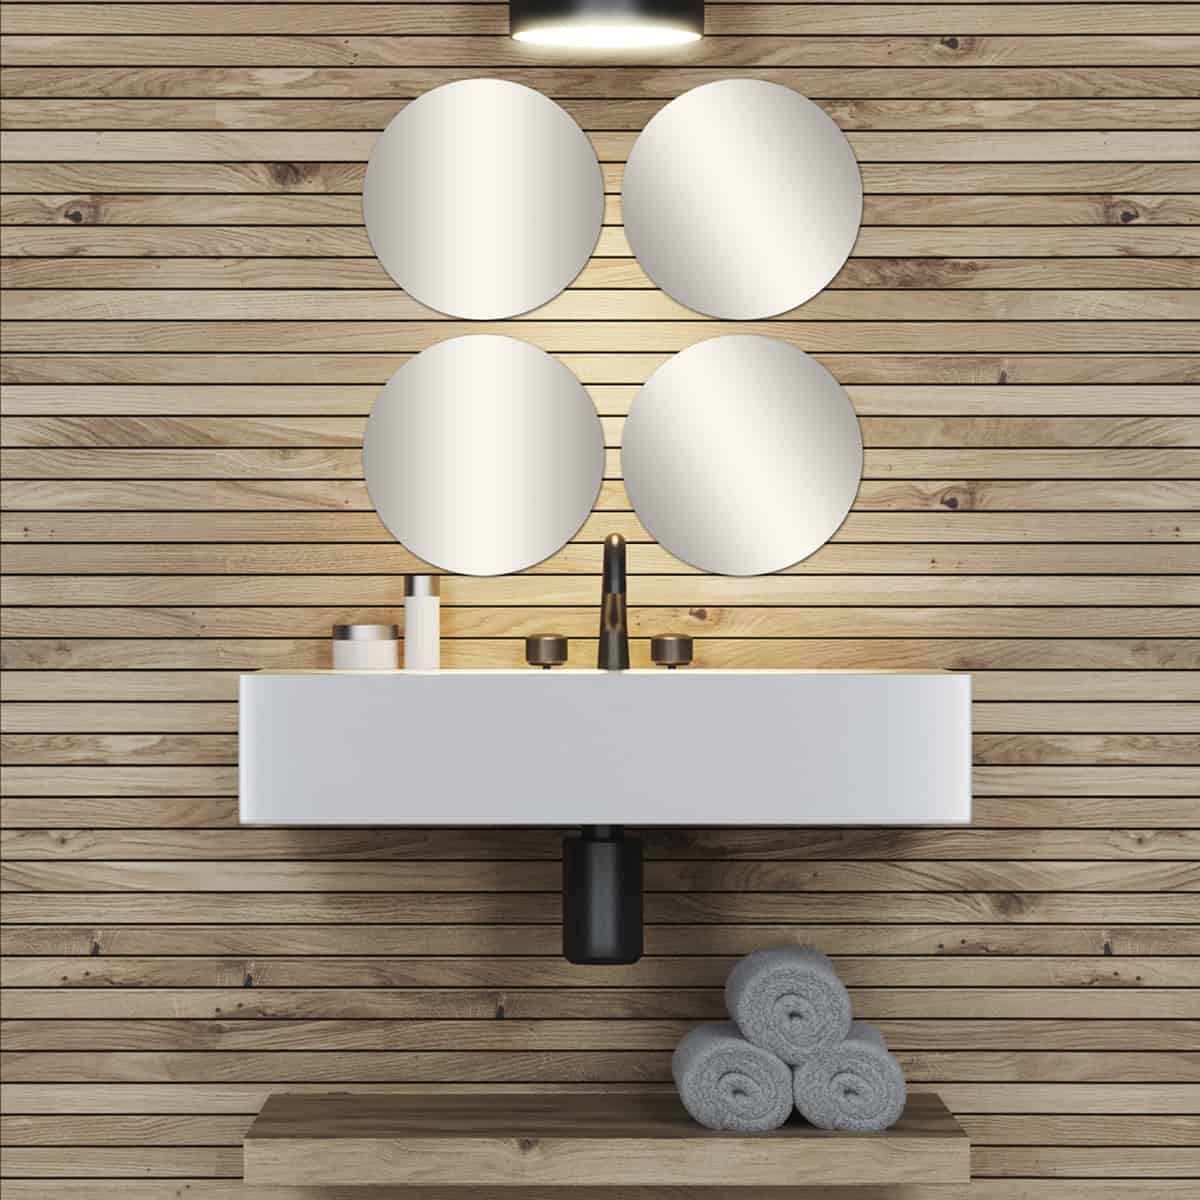 Big Decorative Wall Self Adhesive Shaped Mirrors – Set Of 4 Inside Most Recently Released Big Decorative Wall Mirrors (View 12 of 20)